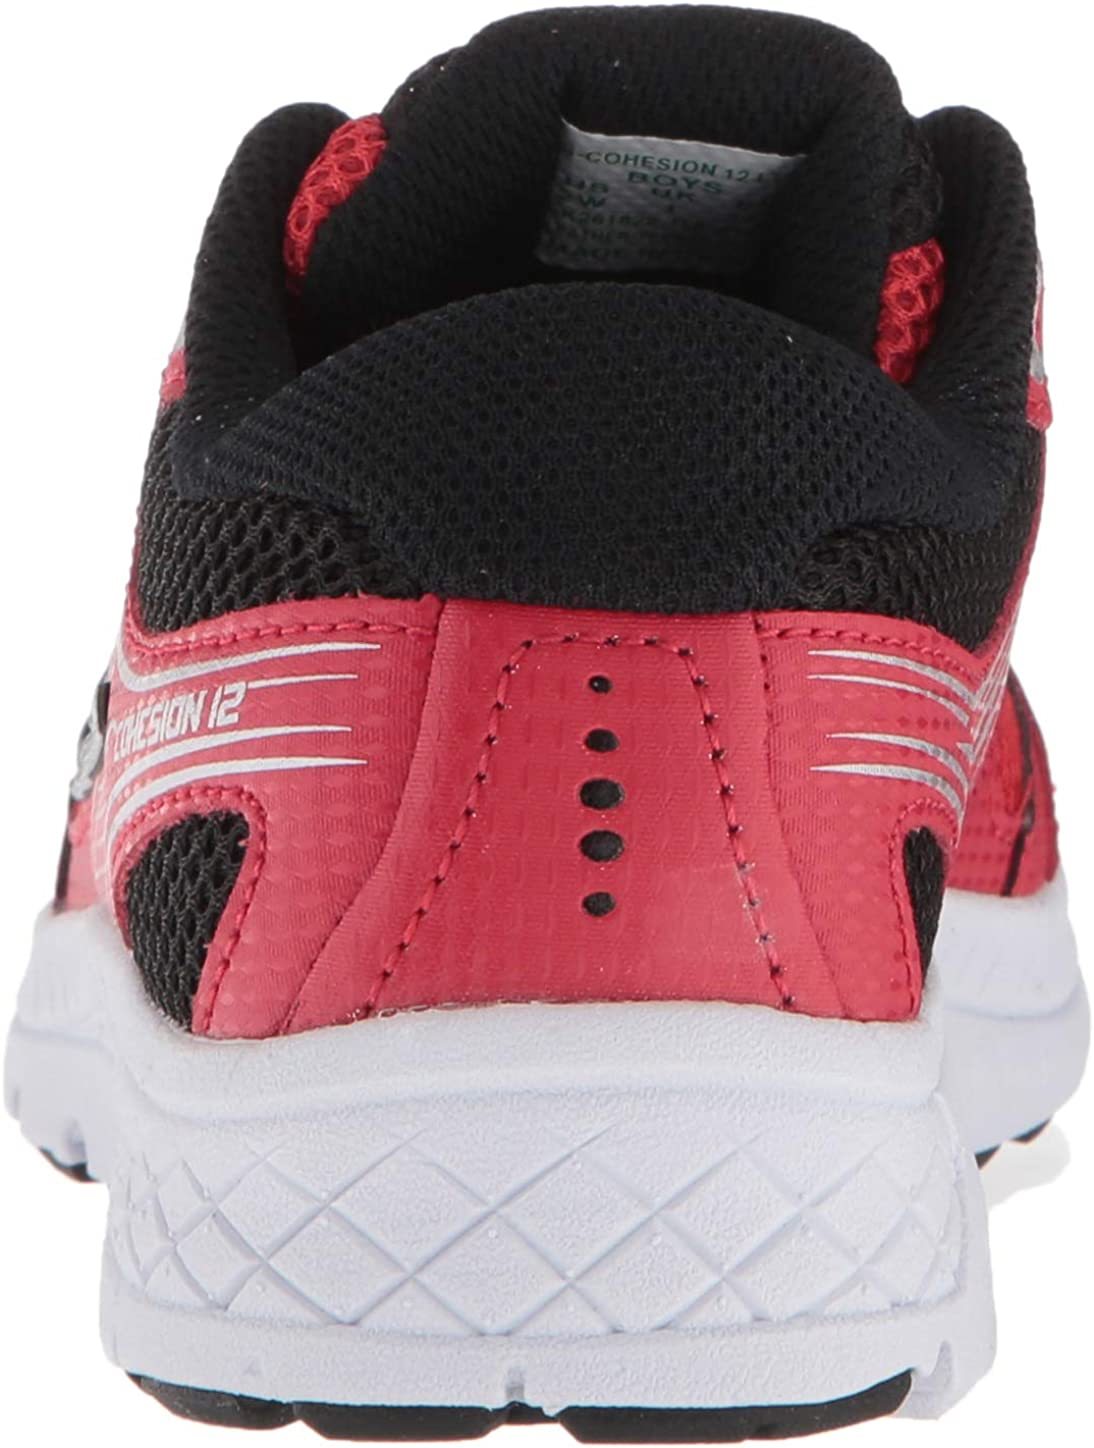 060 Medium US Big Kid red//Black Saucony Unisex-Kids Cohesion 12 LTT Sneaker